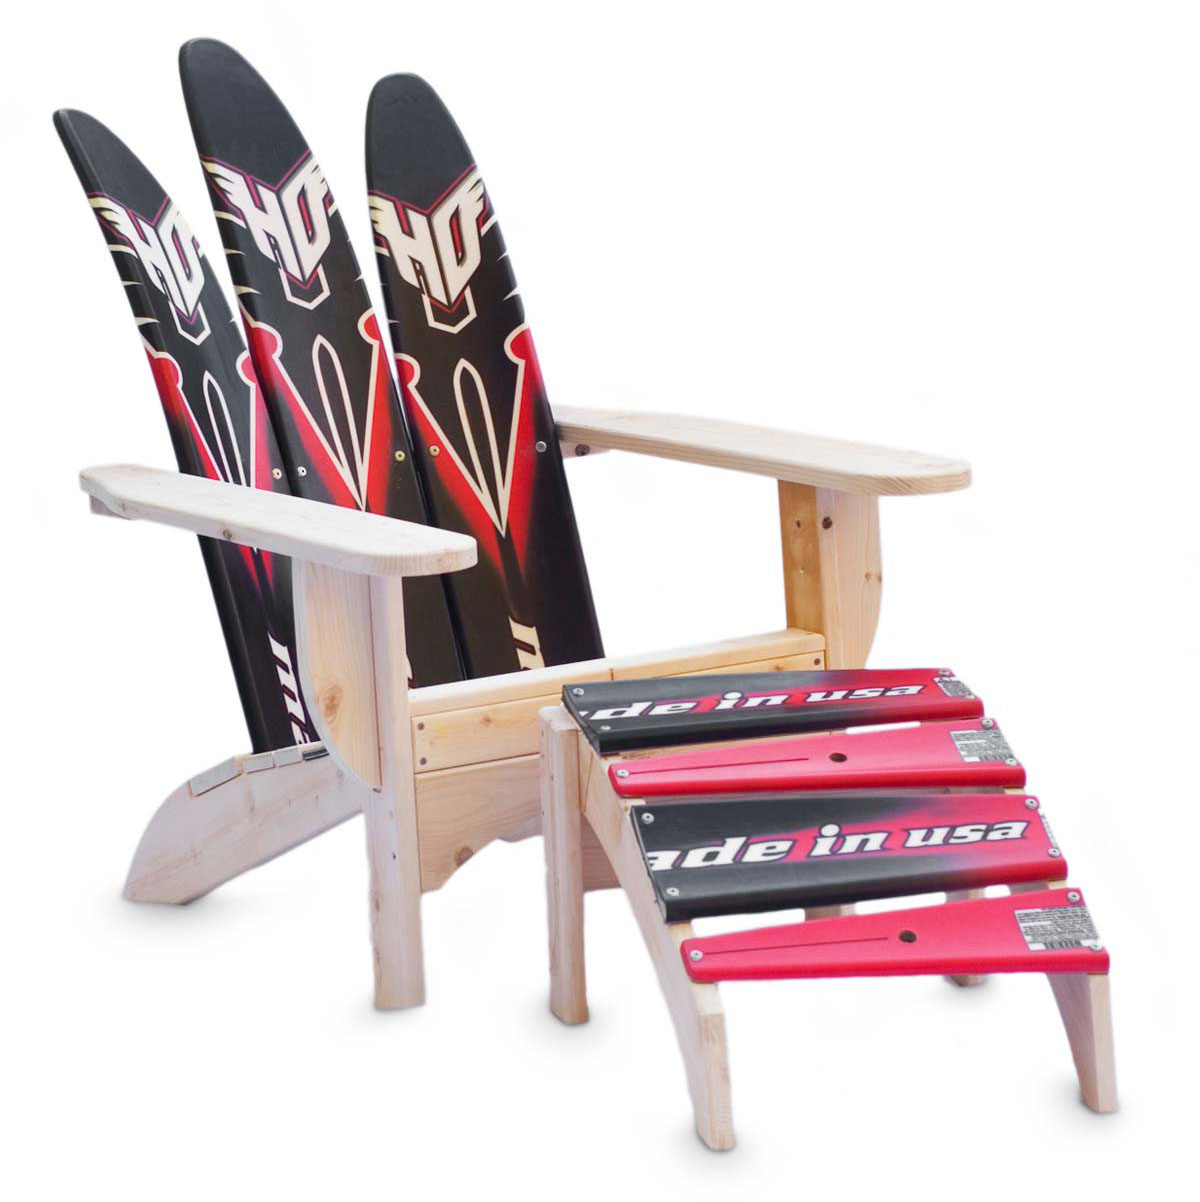 Water Ski Chair Cool Sport Equipment Chairs Idesignarch Interior